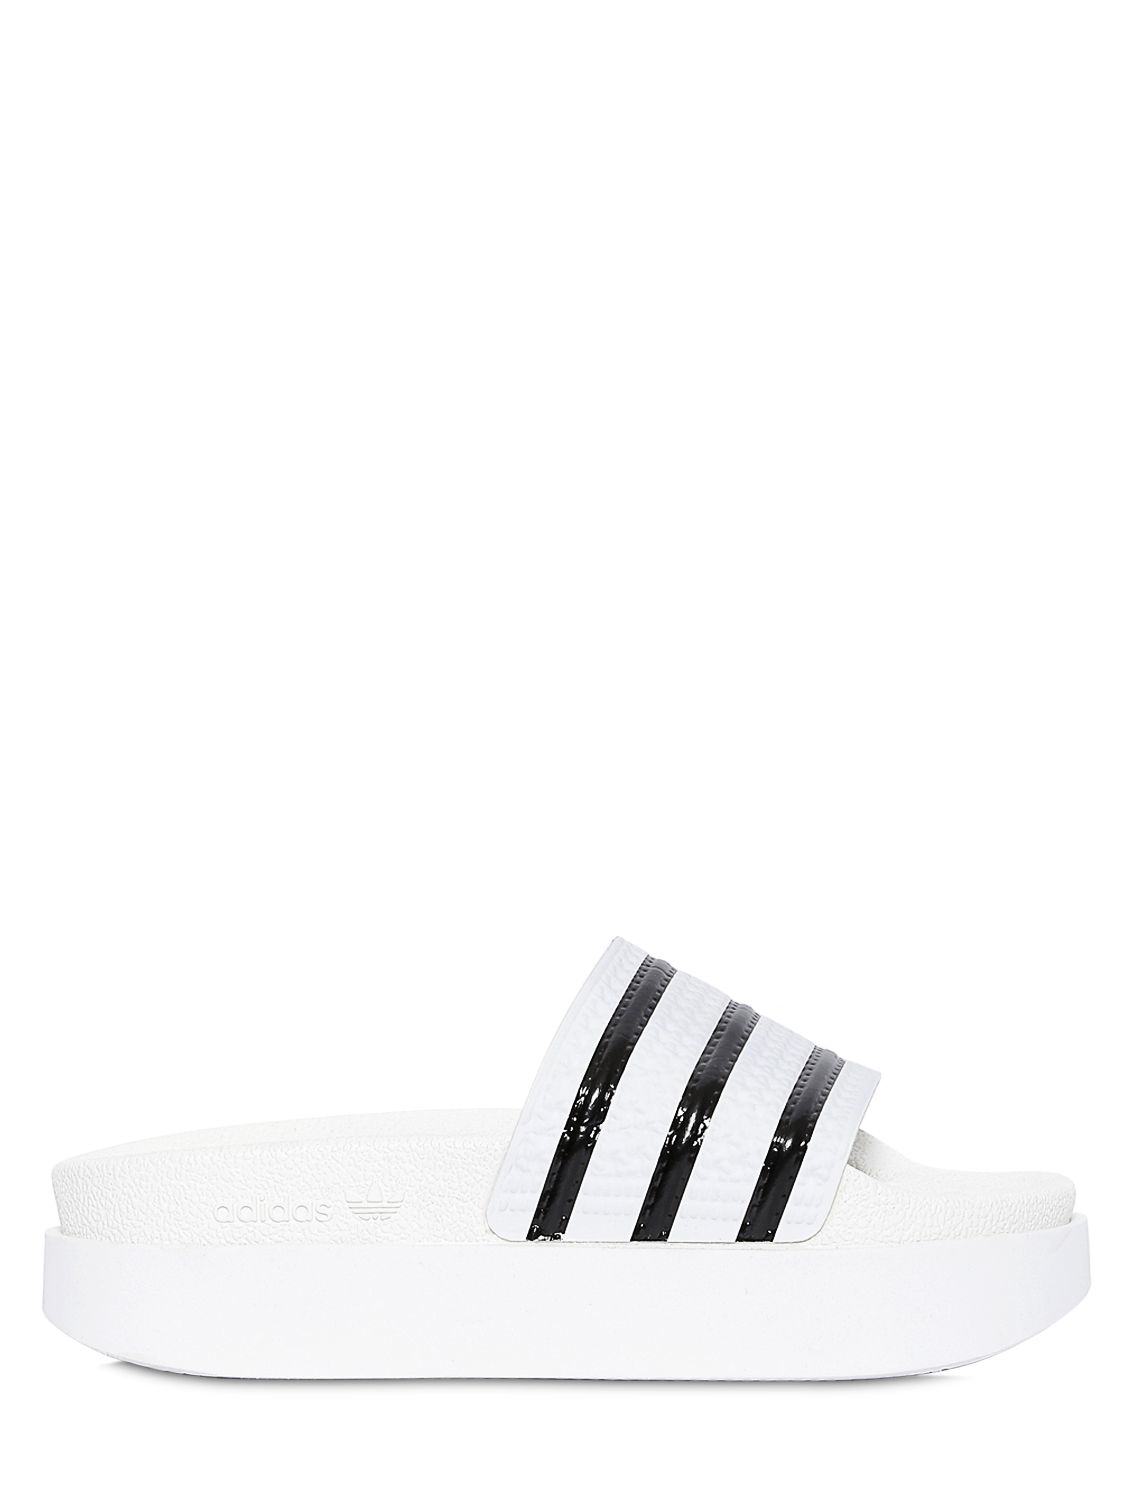 cbf3c981f683ba adidas Originals Adilette Bold Rubber Slides in White - Lyst